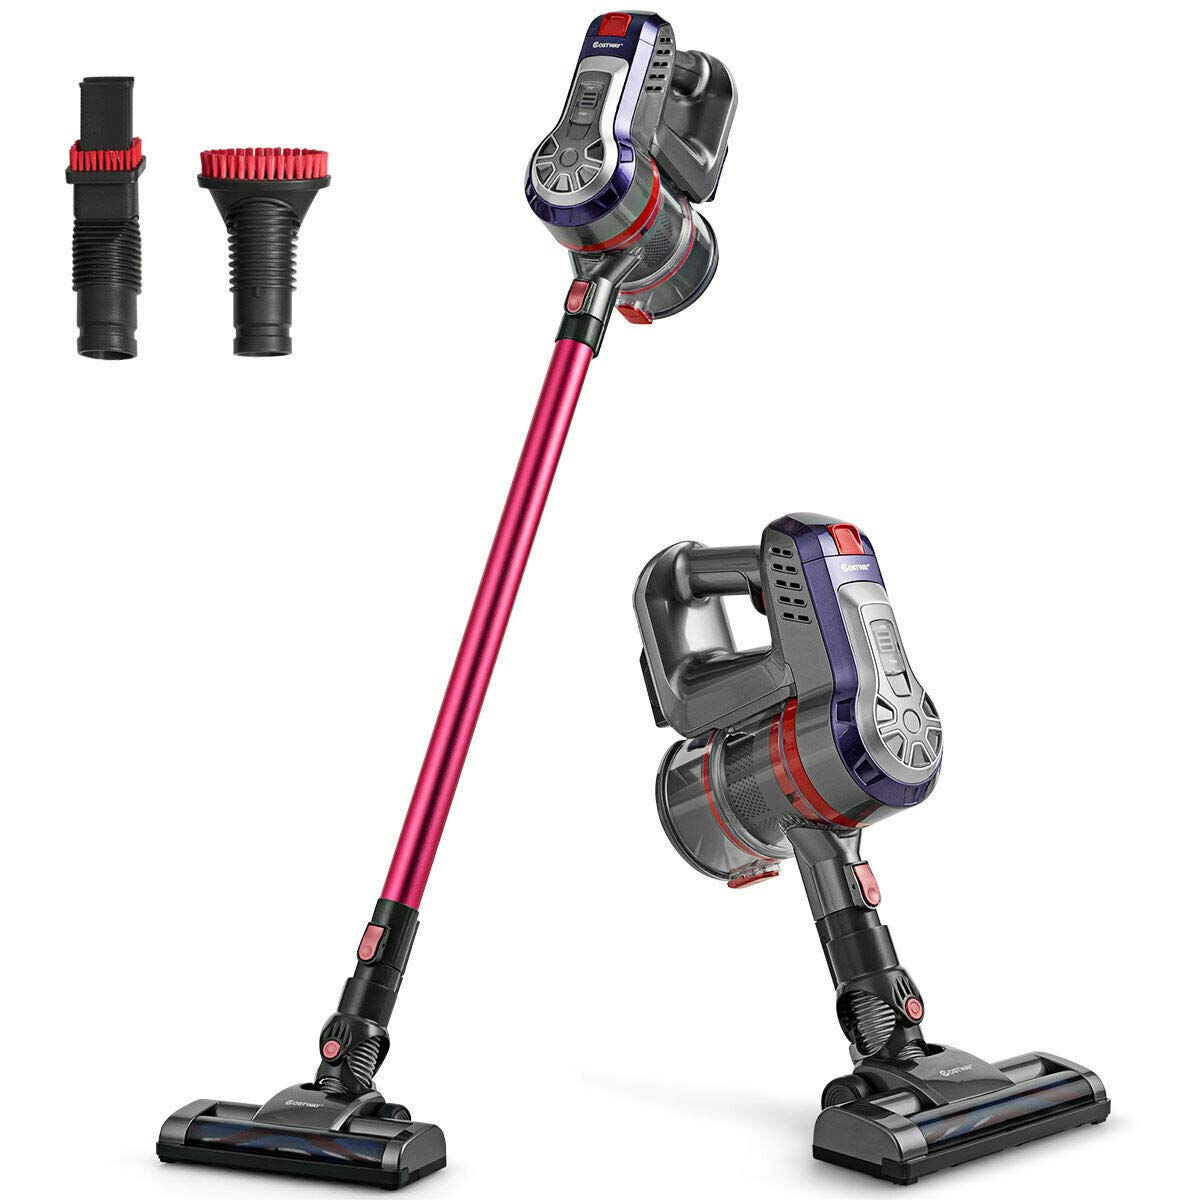 COSTWAY 16KPa Cordless Bagless Vacuum Cleaner, Lightweight Stick Handheld Vacuum with HEPA Filtration and Brushless Motor, Detachable Lithium Battery Rechargeable Ideal for Pet Hair Home Hard Floor